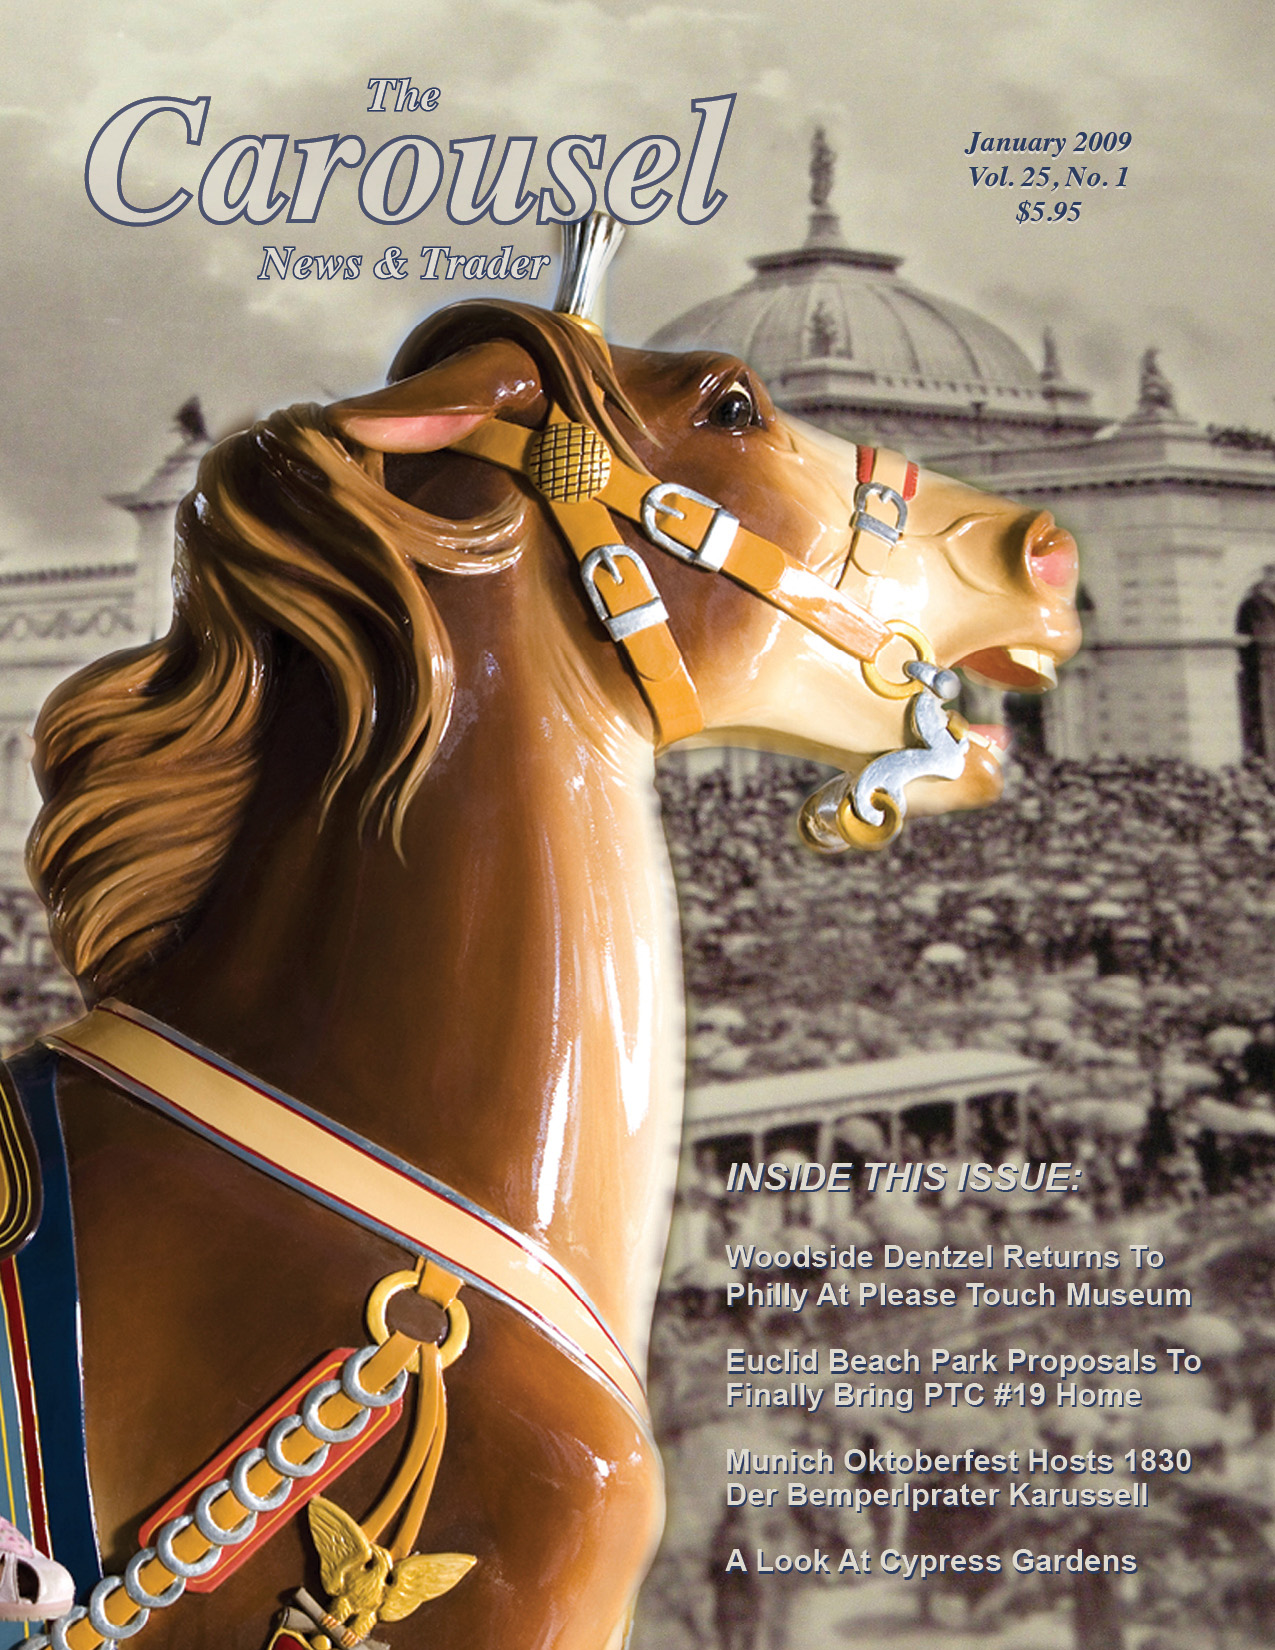 Carousel-news-cover-1-Please-Touch-museum-carousel-January-2009